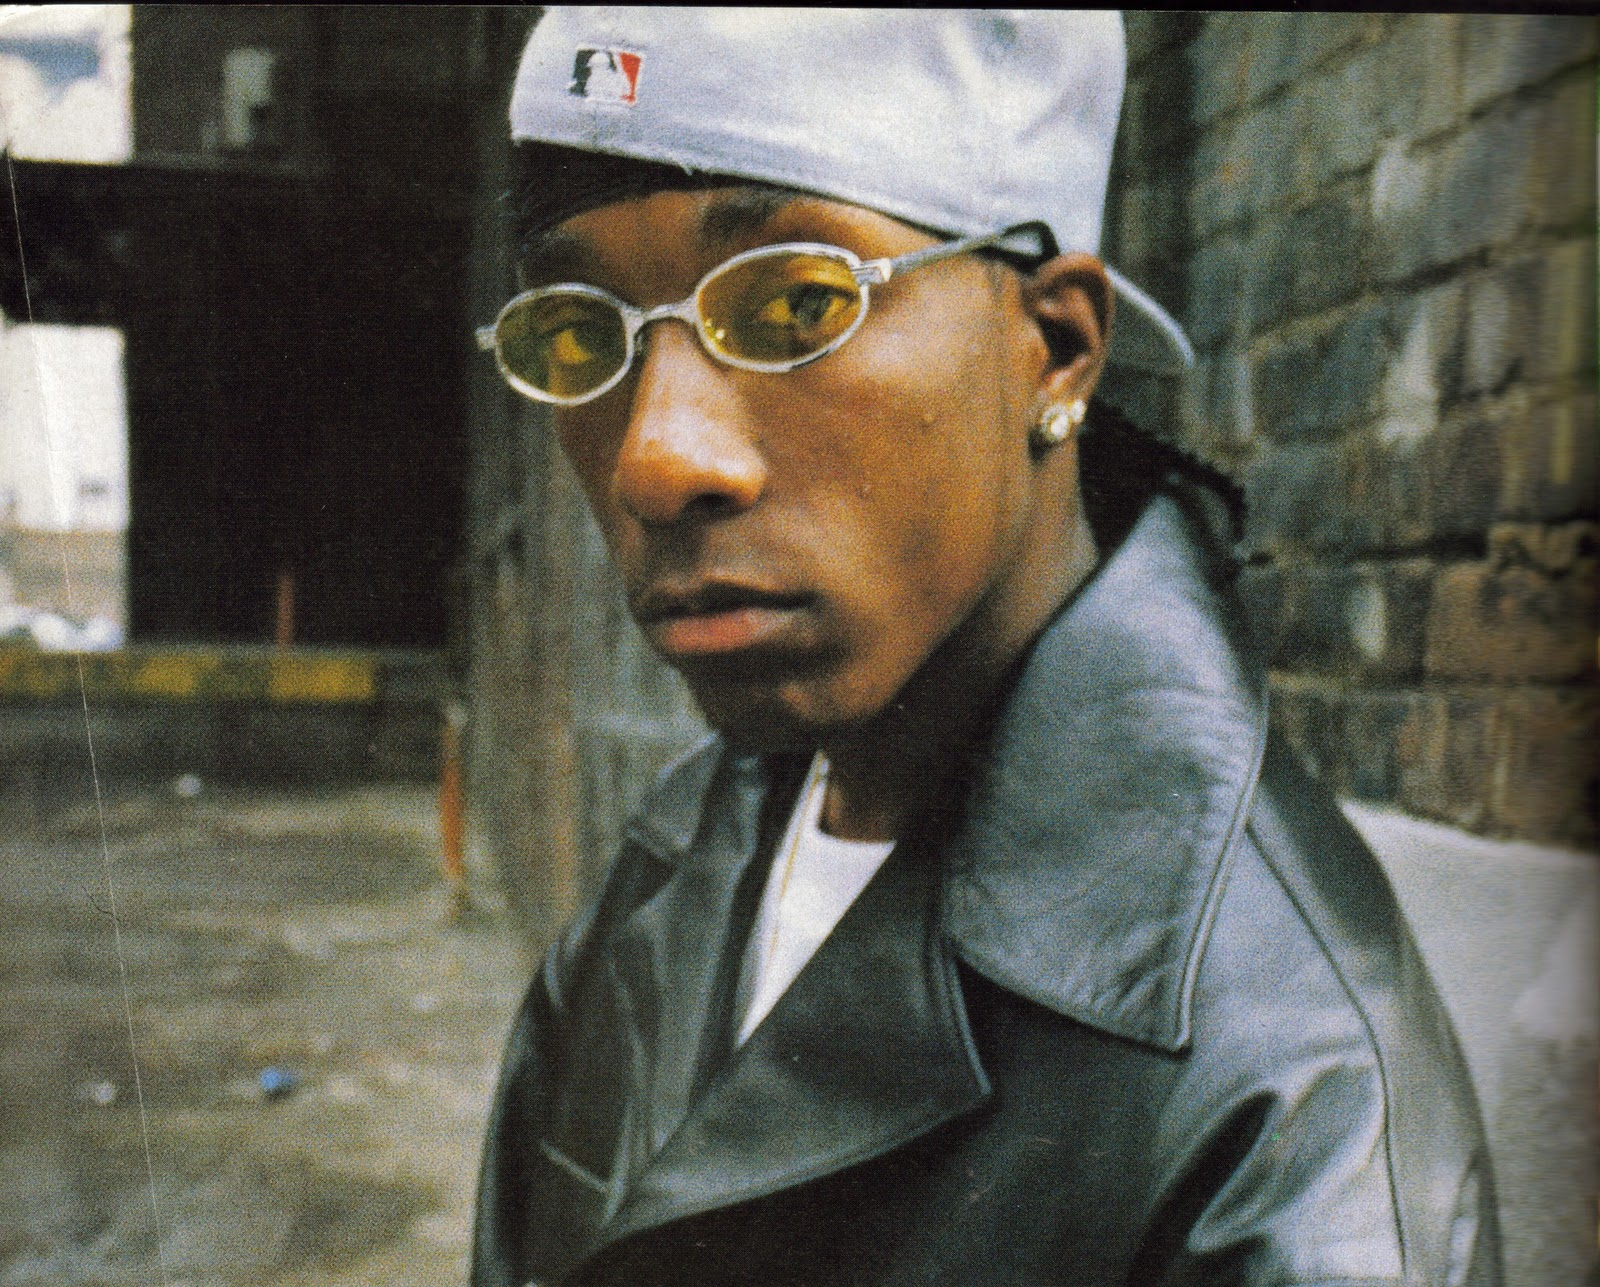 Big L looking hot with his glasses on and he is wearing a light gray yankee fitted and a leather jacket.jpg